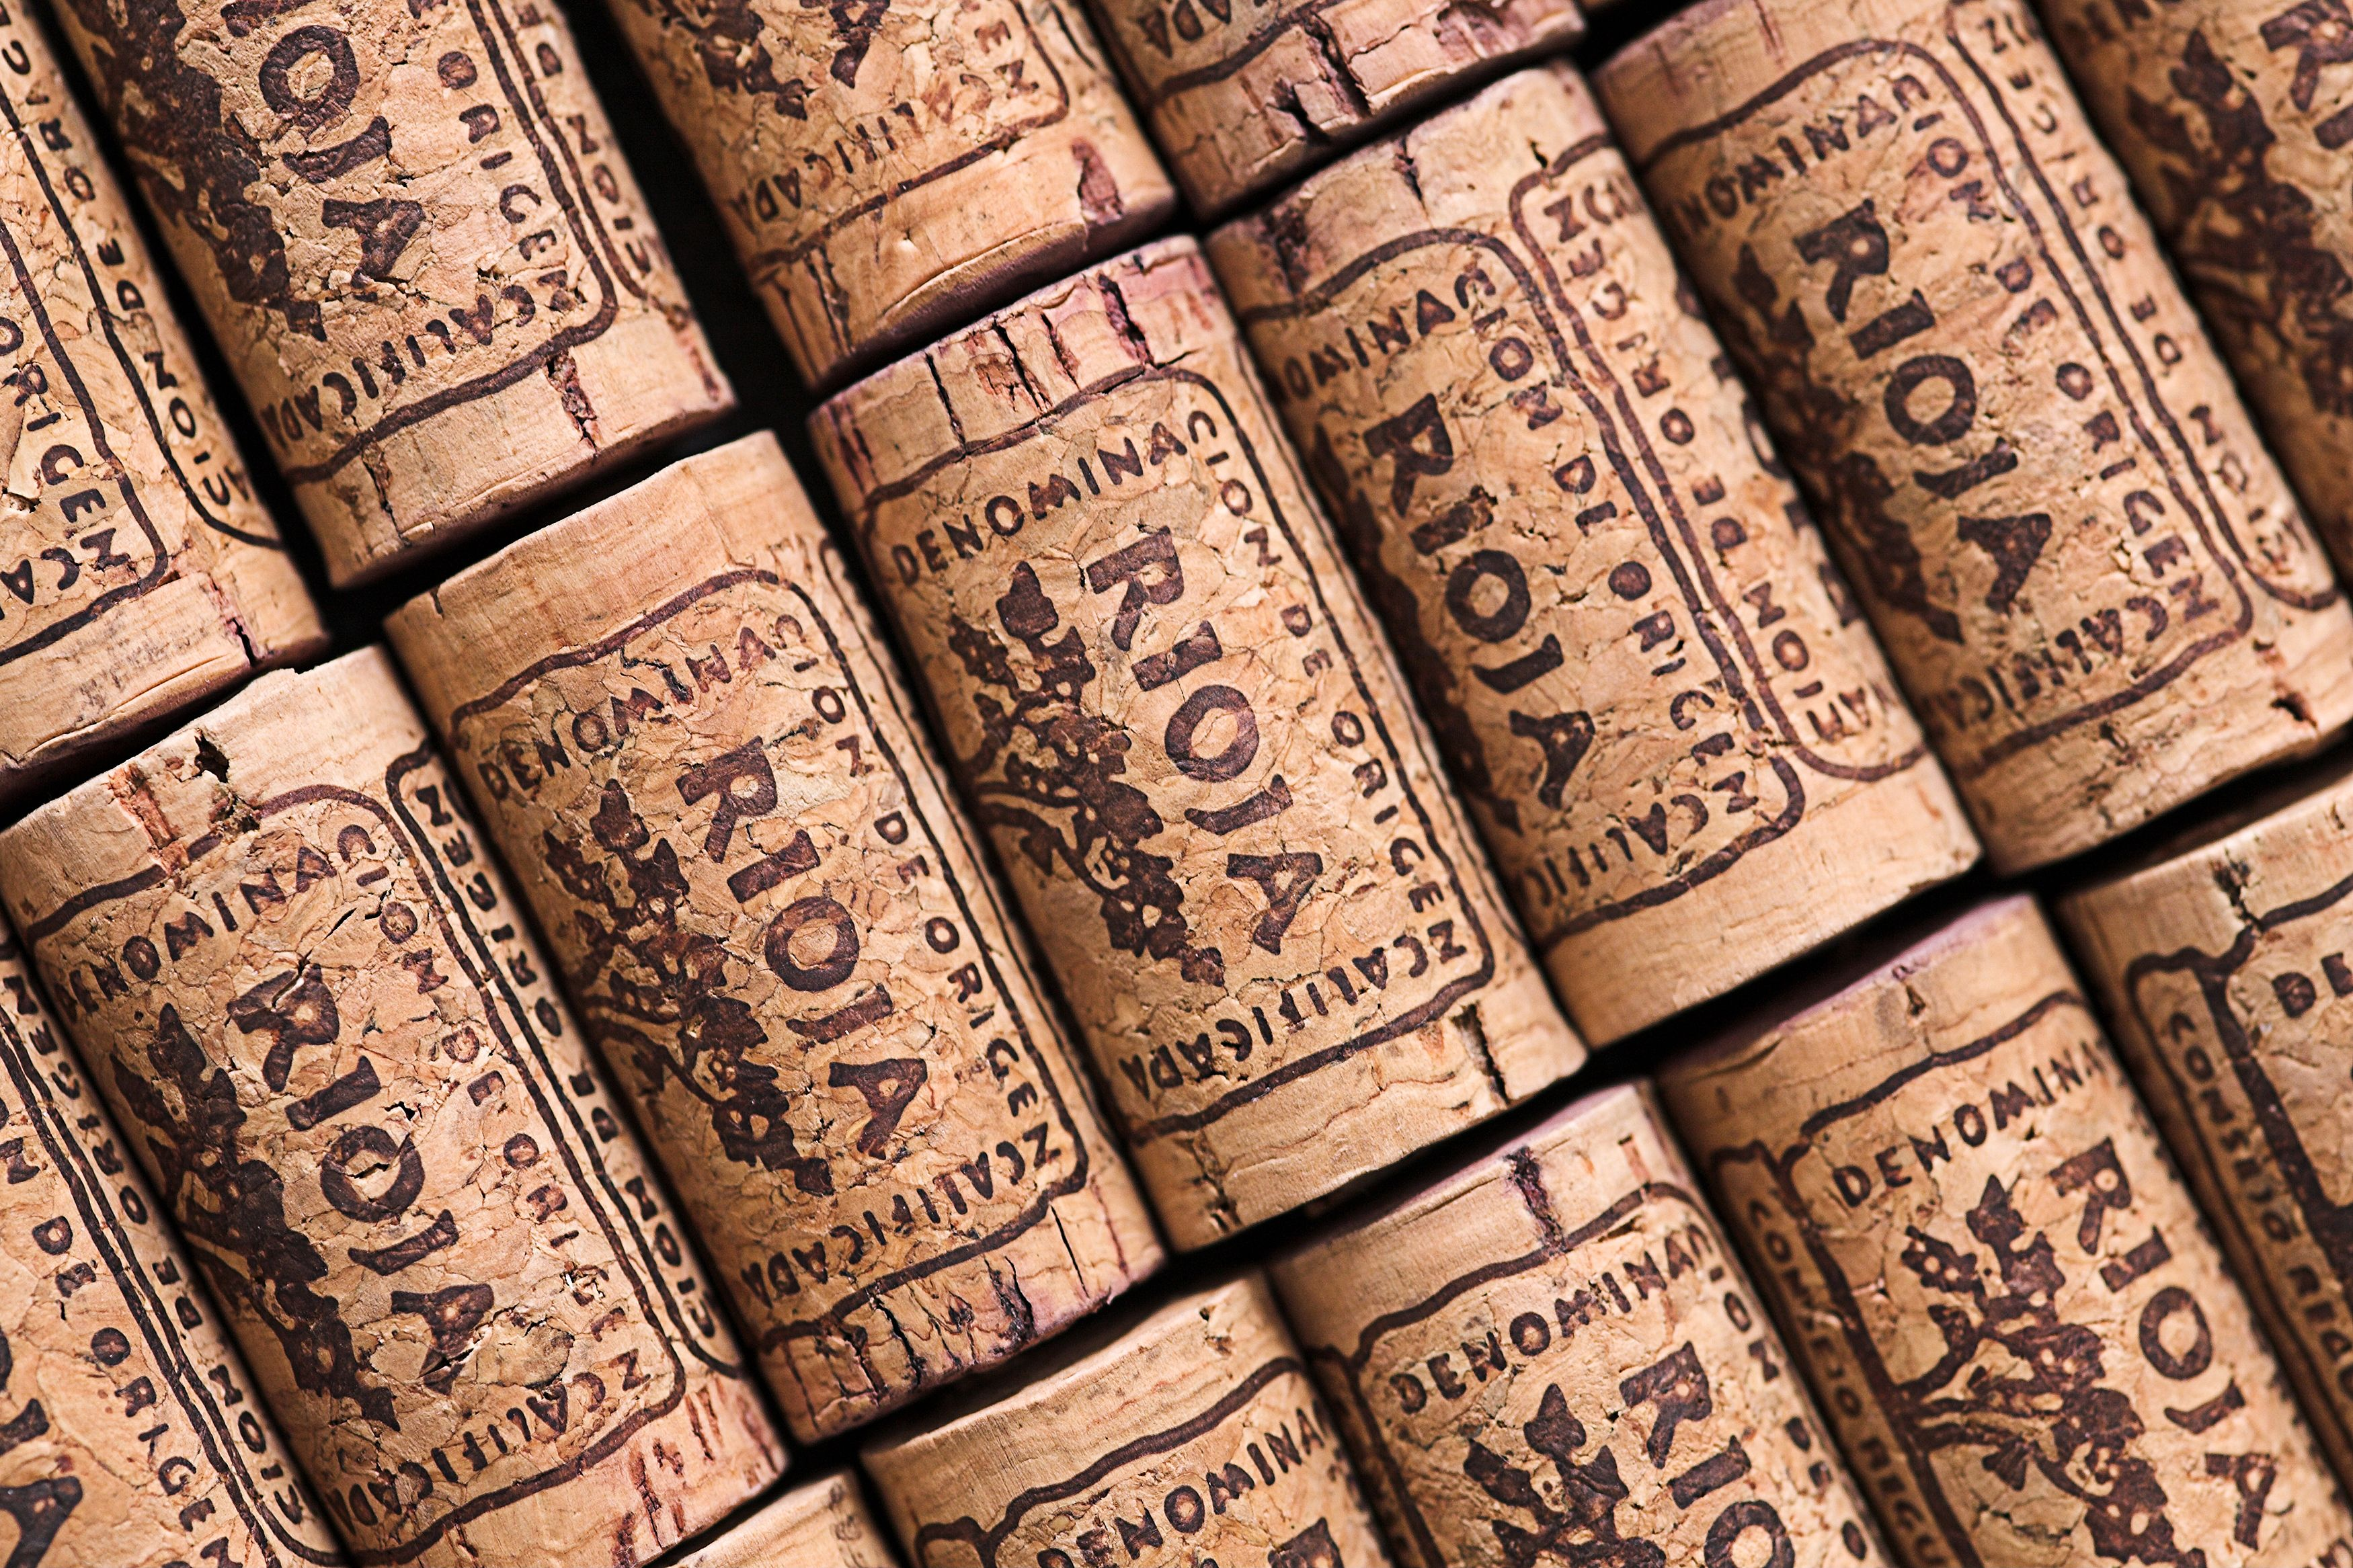 Rows of Rioja wine corks (Thinkstock/PA)